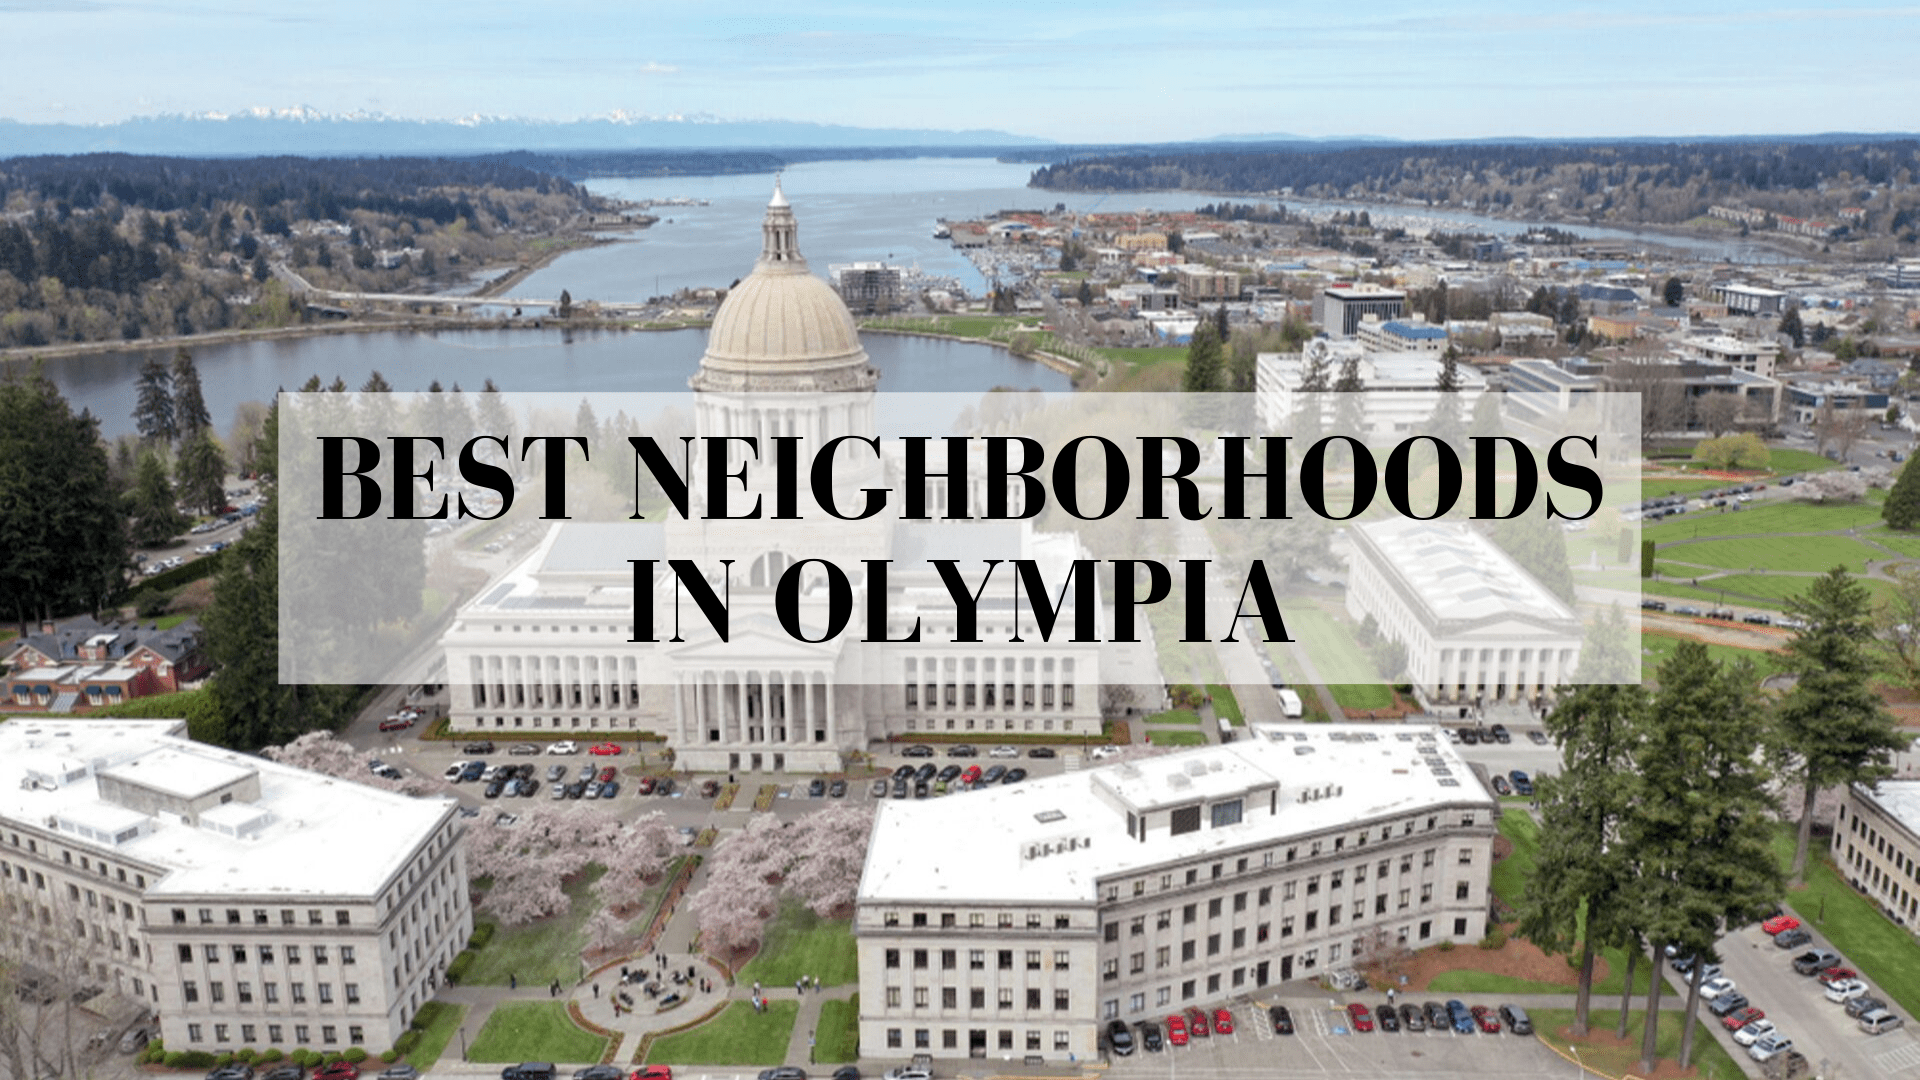 8 Best Neighborhoods In Olympia Wa Ultimate Guide All